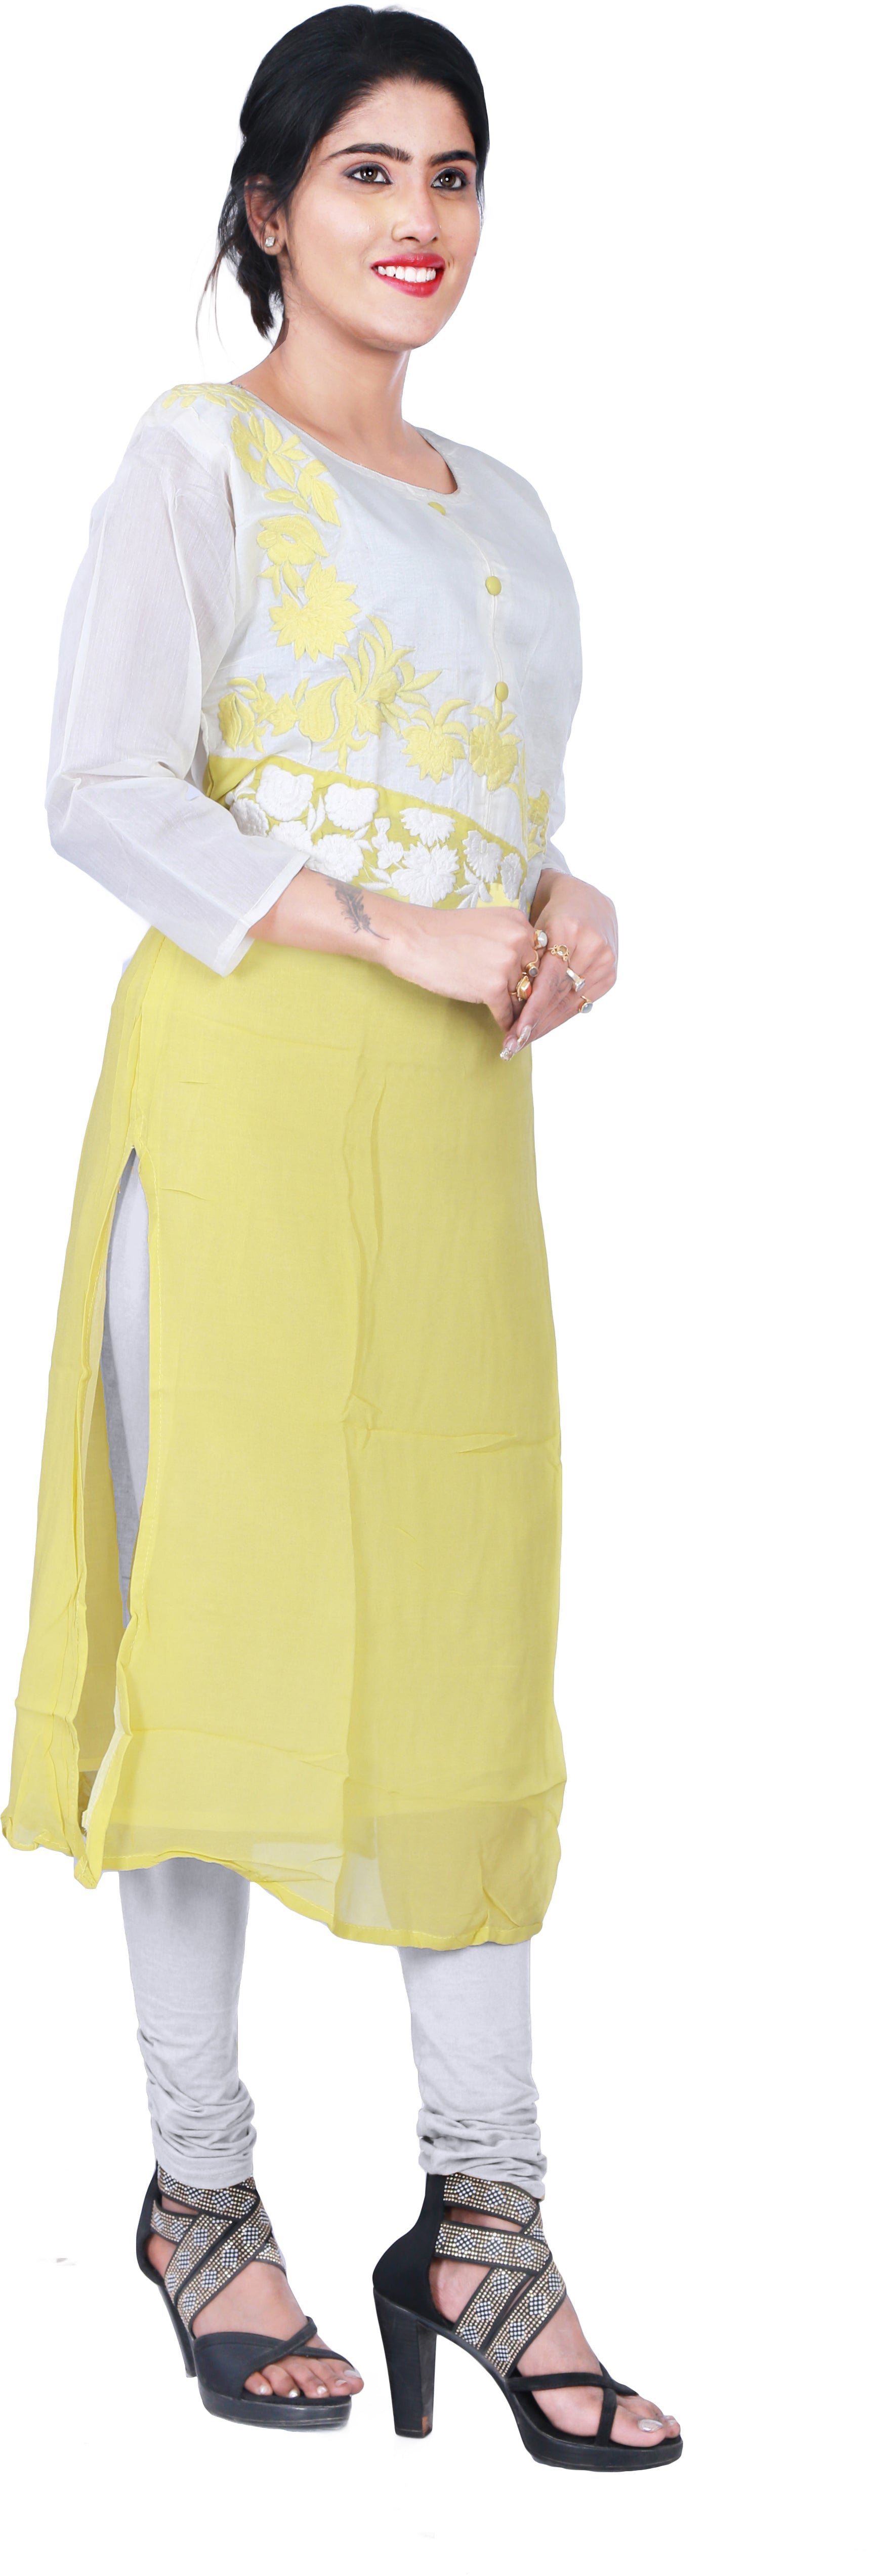 SMSAREE White & Yellow Designer Casual Partywear Cotton (Chanderi) & Georgette Viscos Thread Hand Embroidery Work Stylish Women Kurti Kurta With Free Matching Leggings GK469